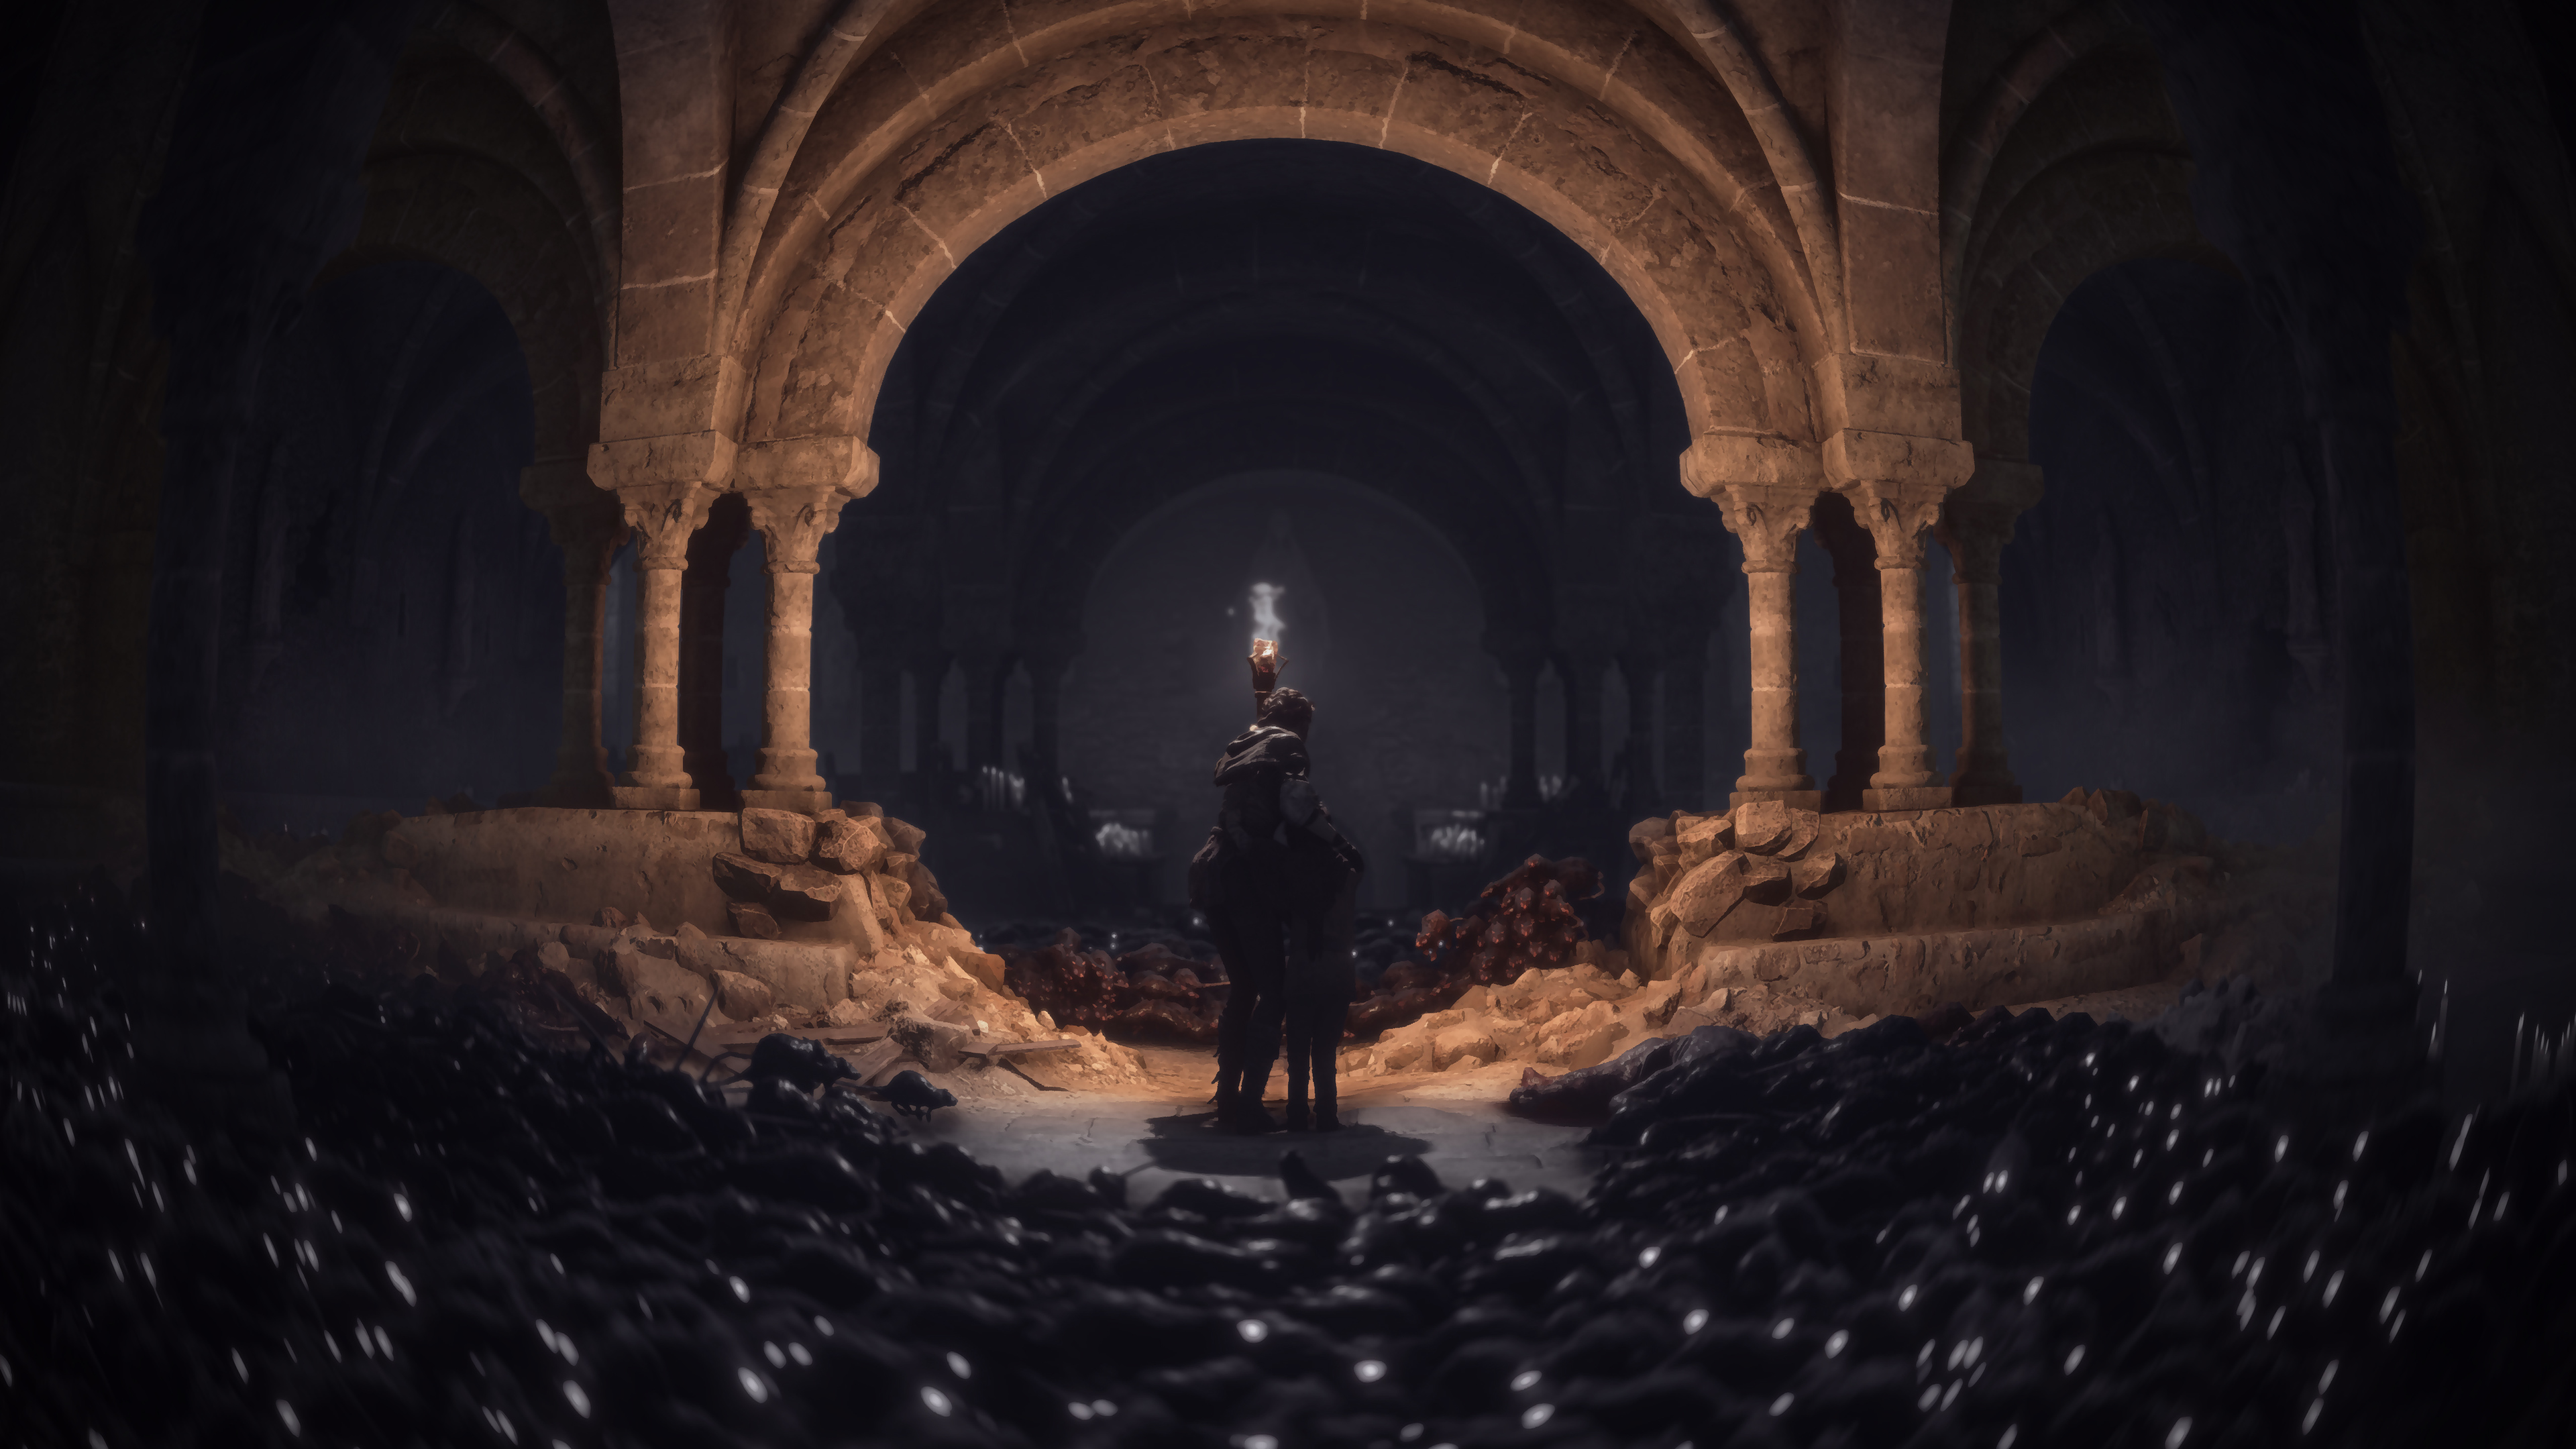 do not scare 1568056869 - Do Not Scare - hd-wallpapers, games wallpapers, a plague tale innocence wallpapers, 5k wallpapers, 4k-wallpapers, 2019 games wallpapers